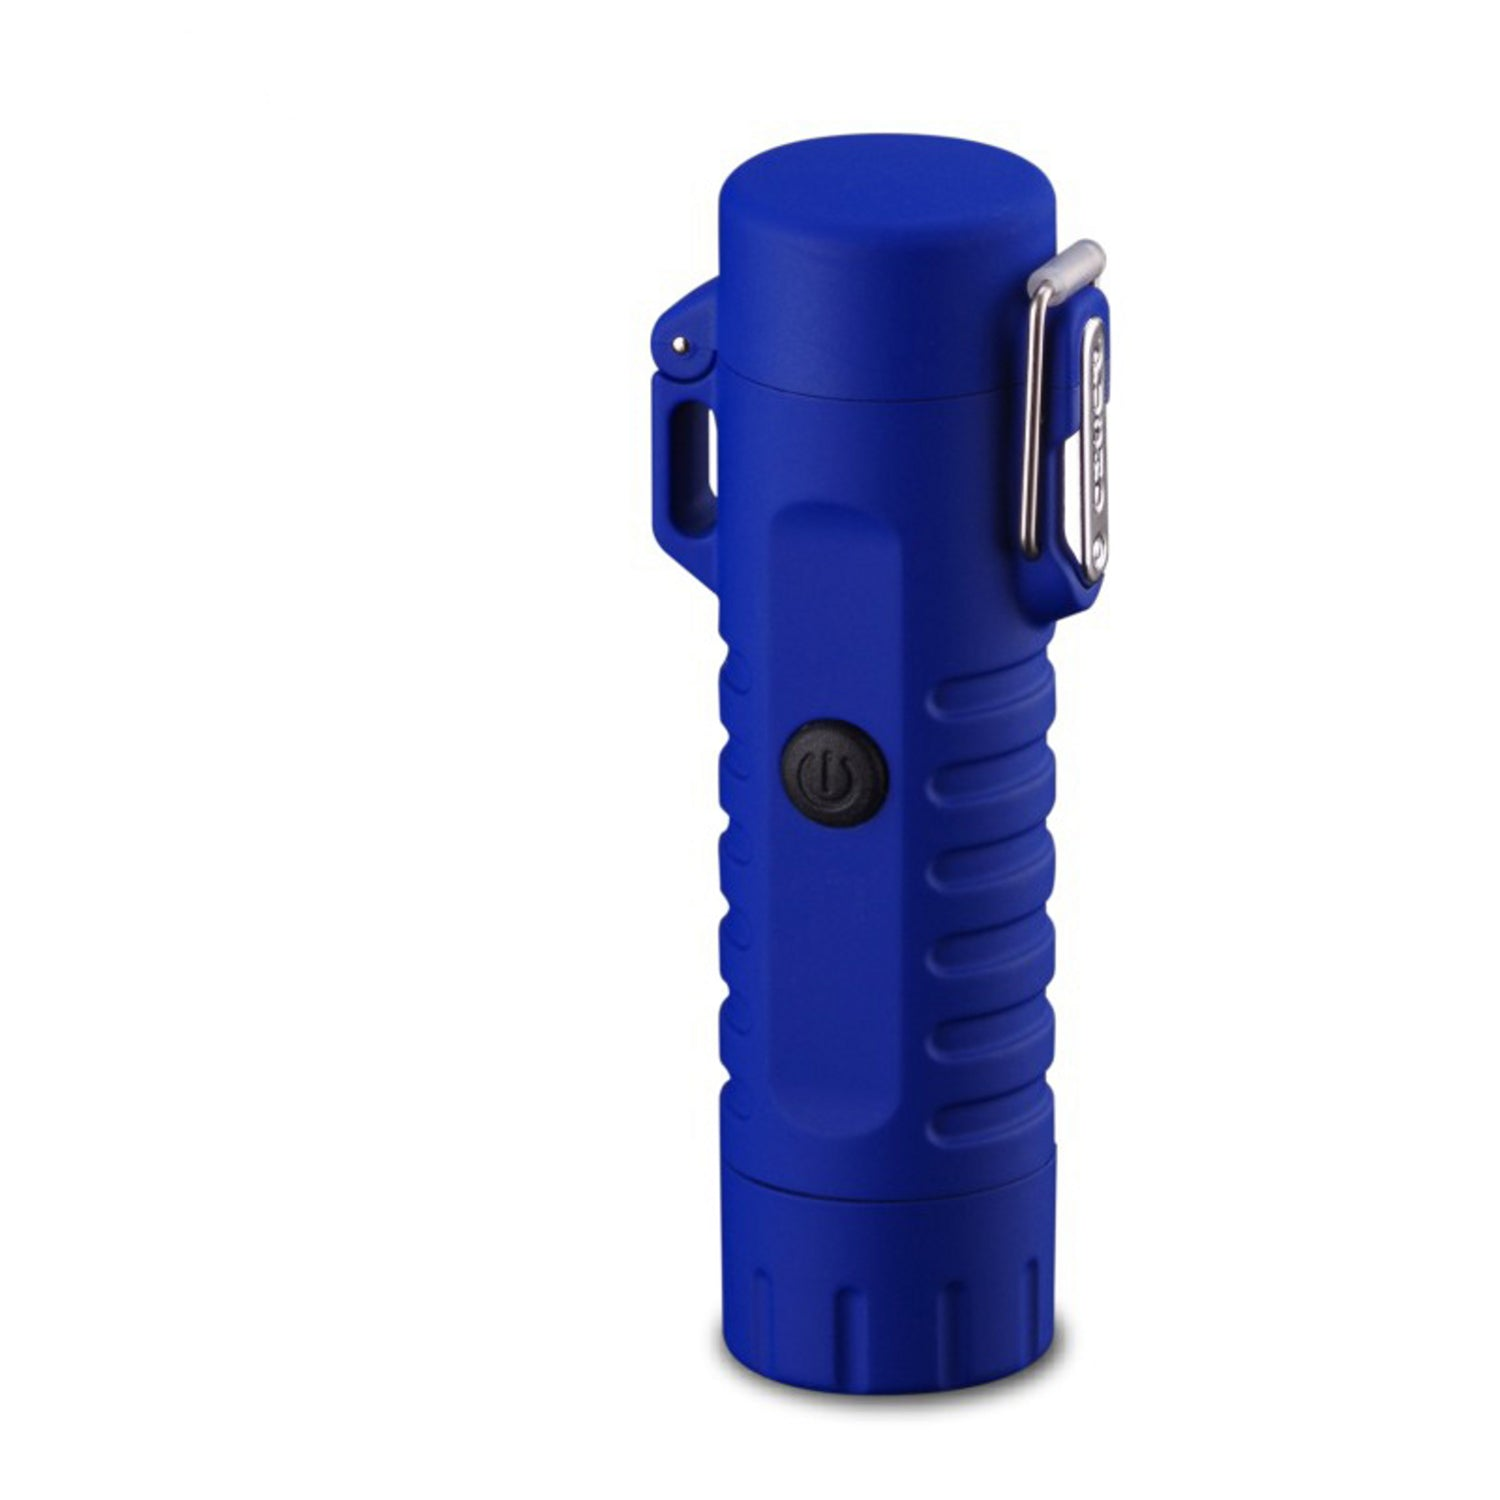 Blue Tactical Waterproof Dual Arc Lighter with LED Tri-Phase Flashlight